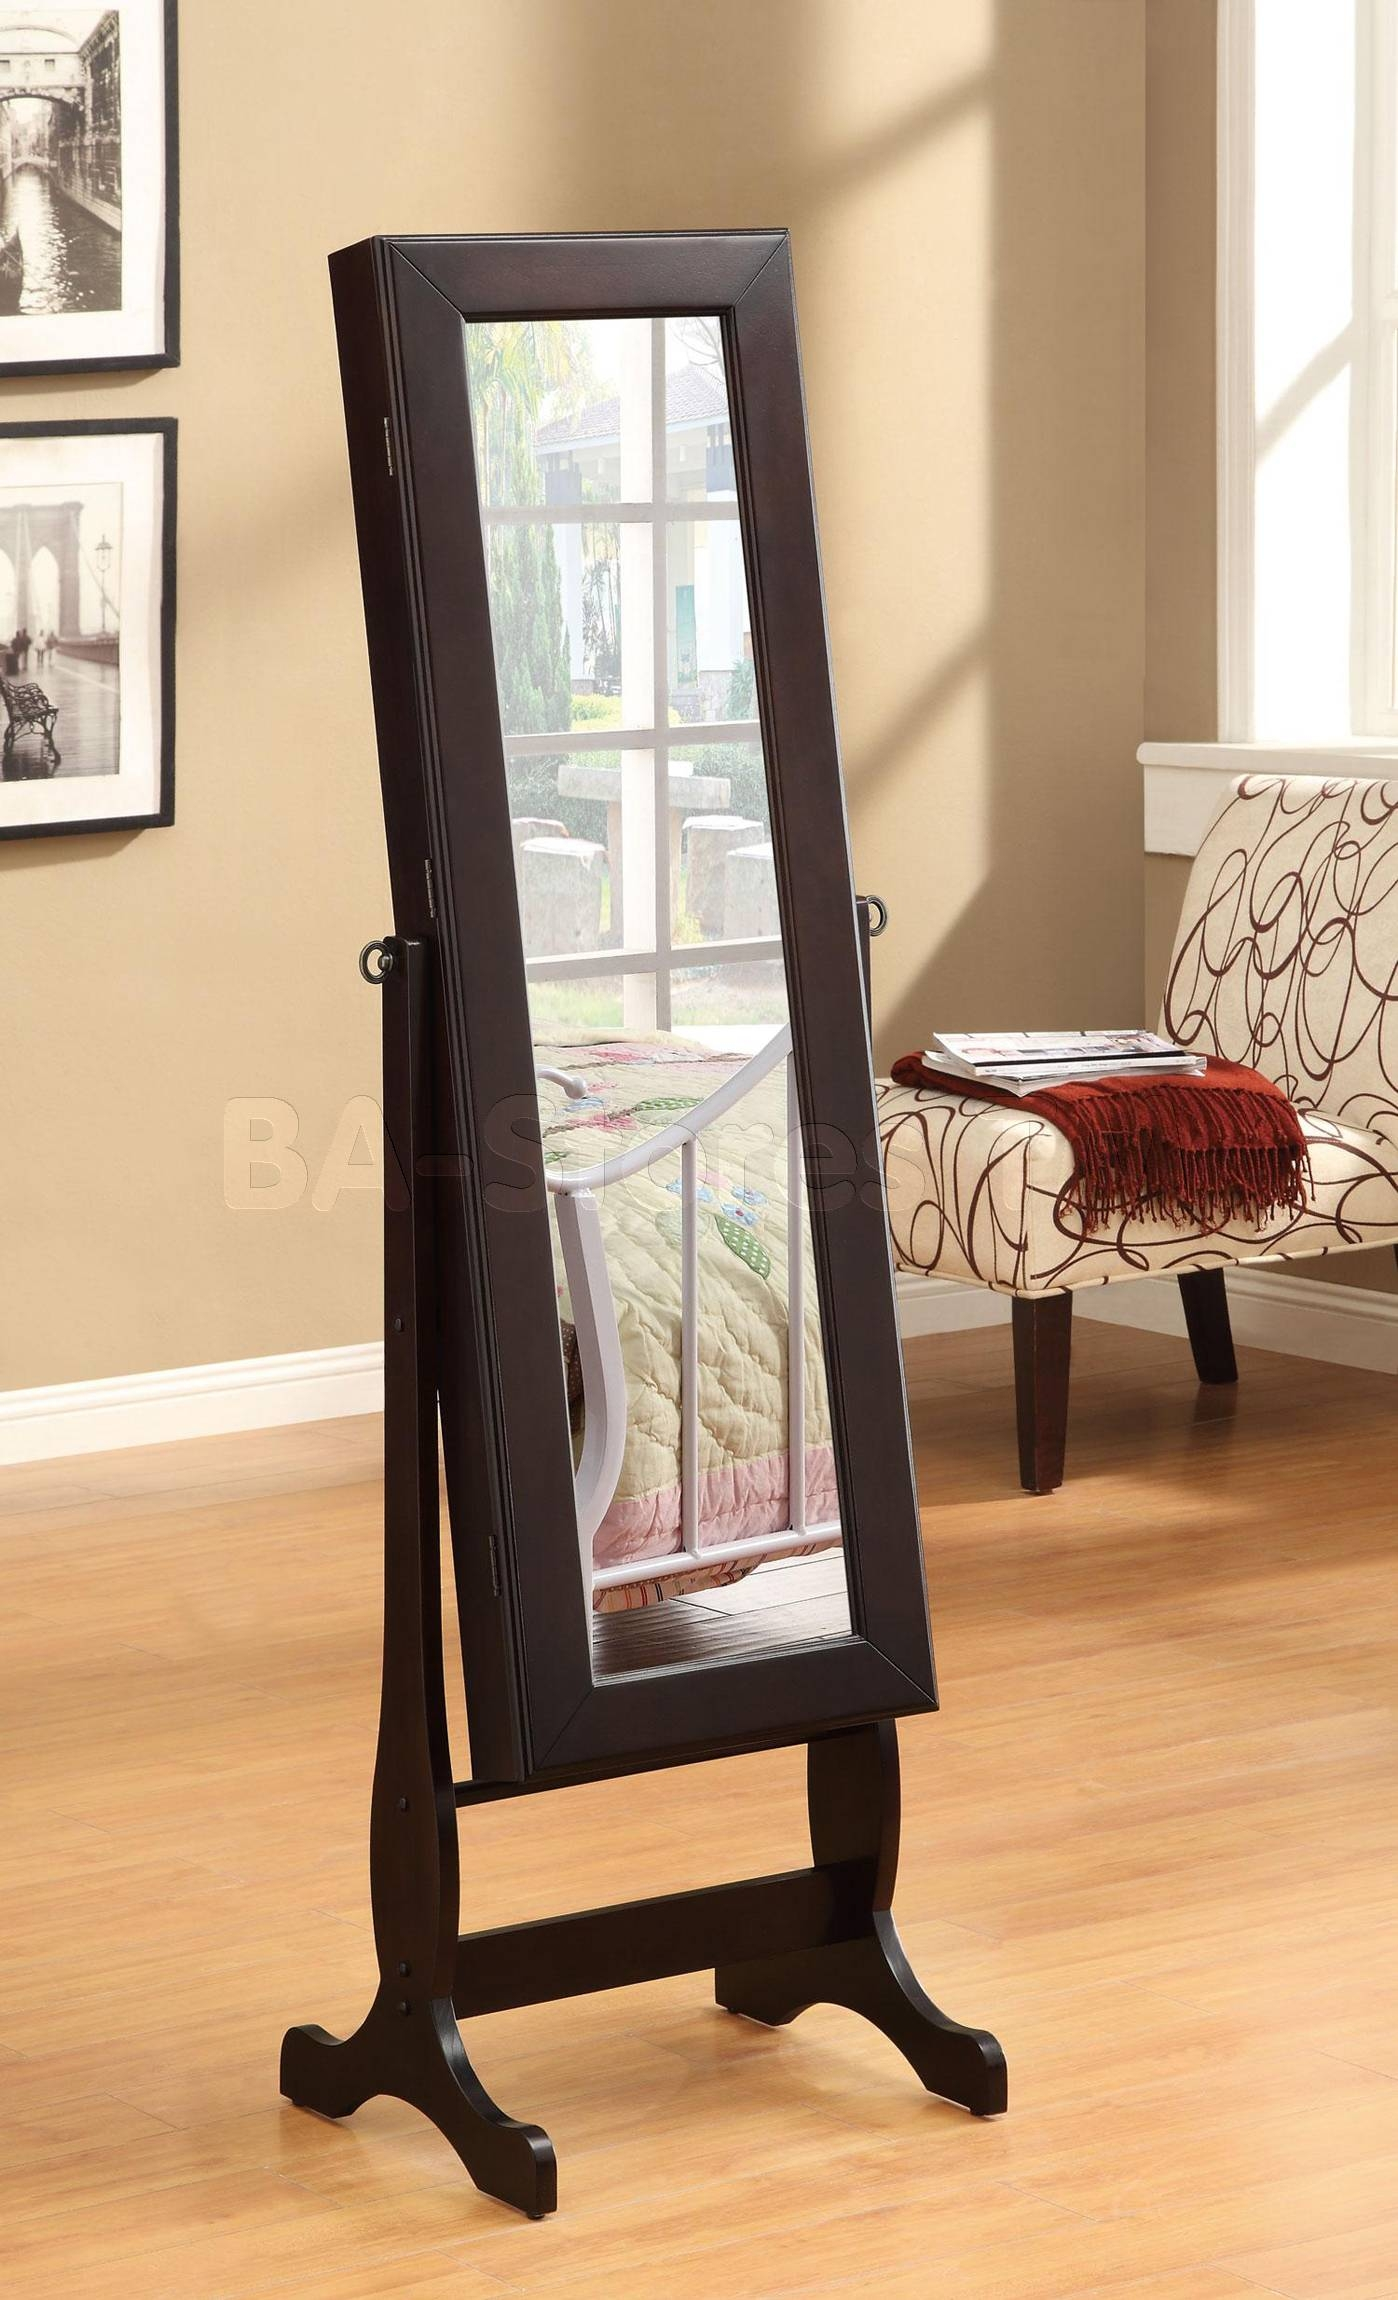 77025_Coa-901805-Accesories-Cheval-Mirror with regard to Free Standing Dress Mirrors (Image 4 of 25)